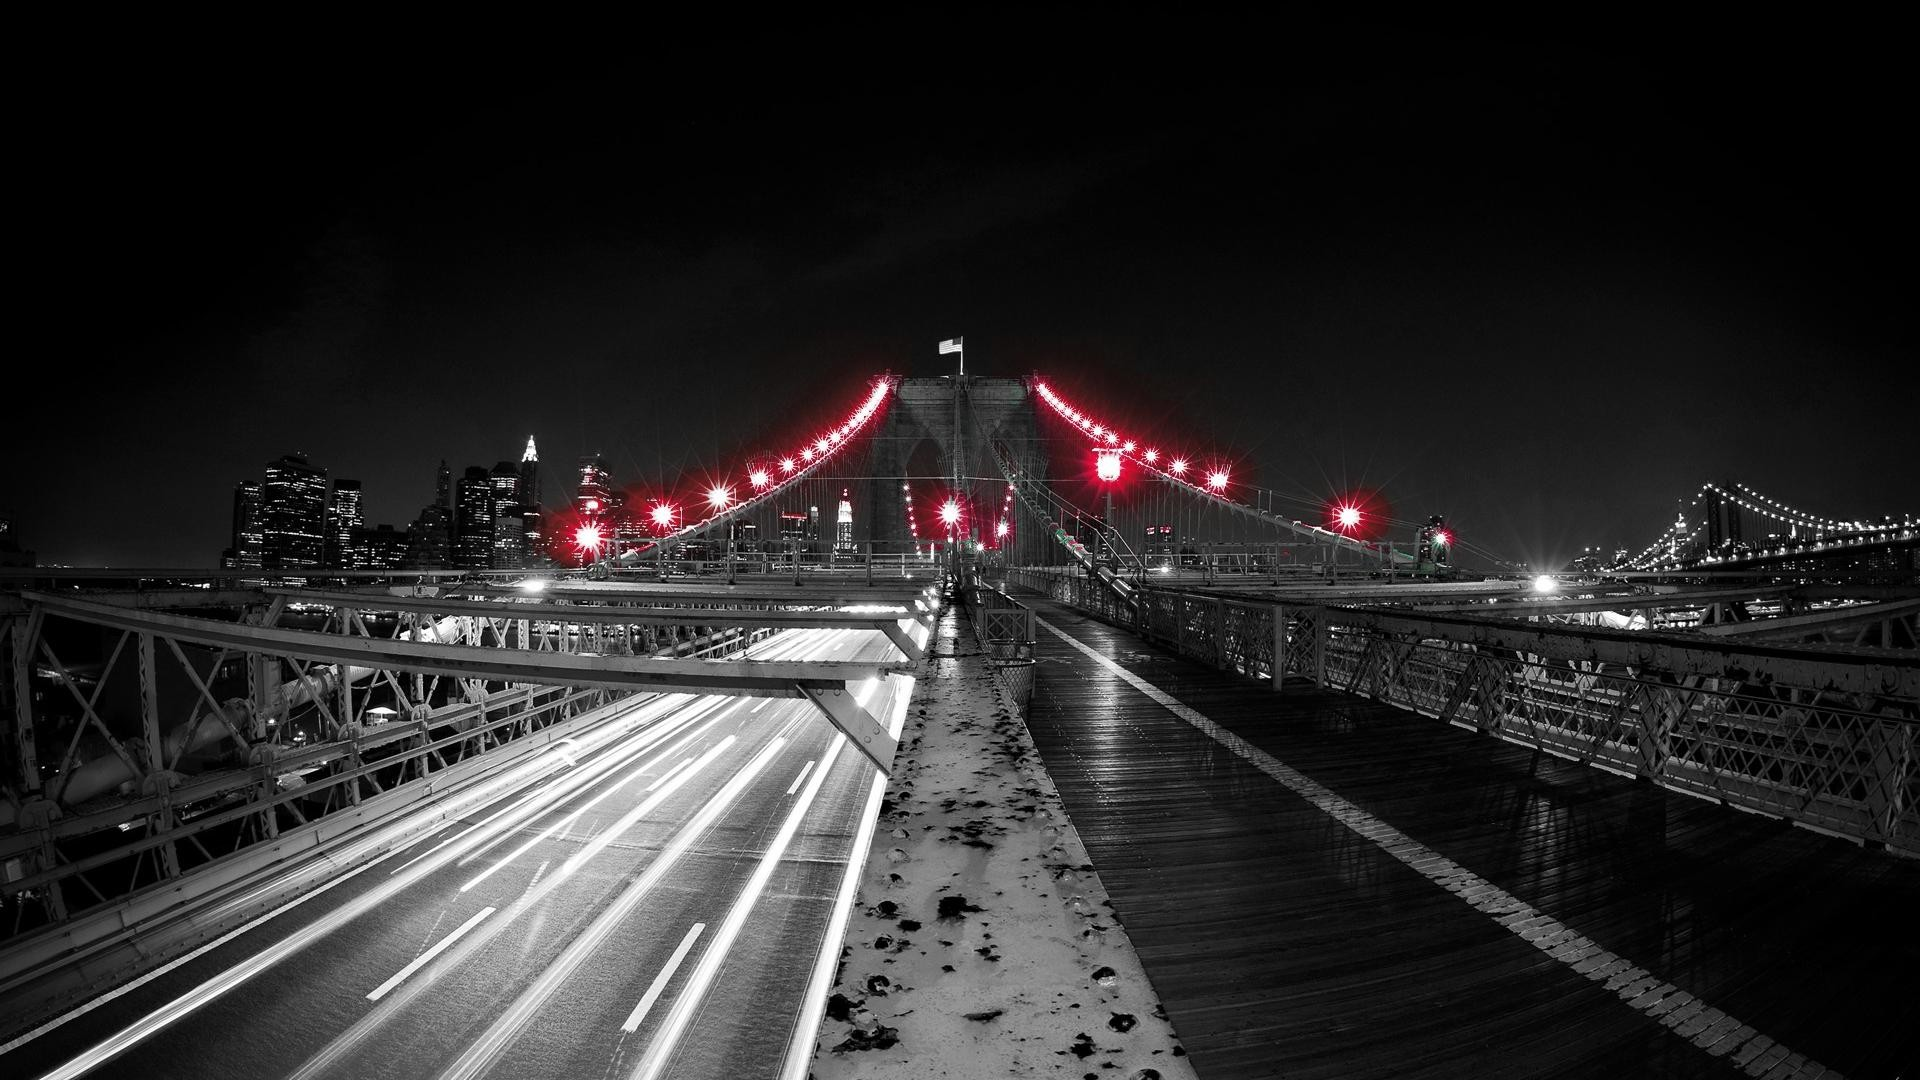 1920x1080 Red Black and White | Black Red Light Bridge White Up Net Wallpaper with   .